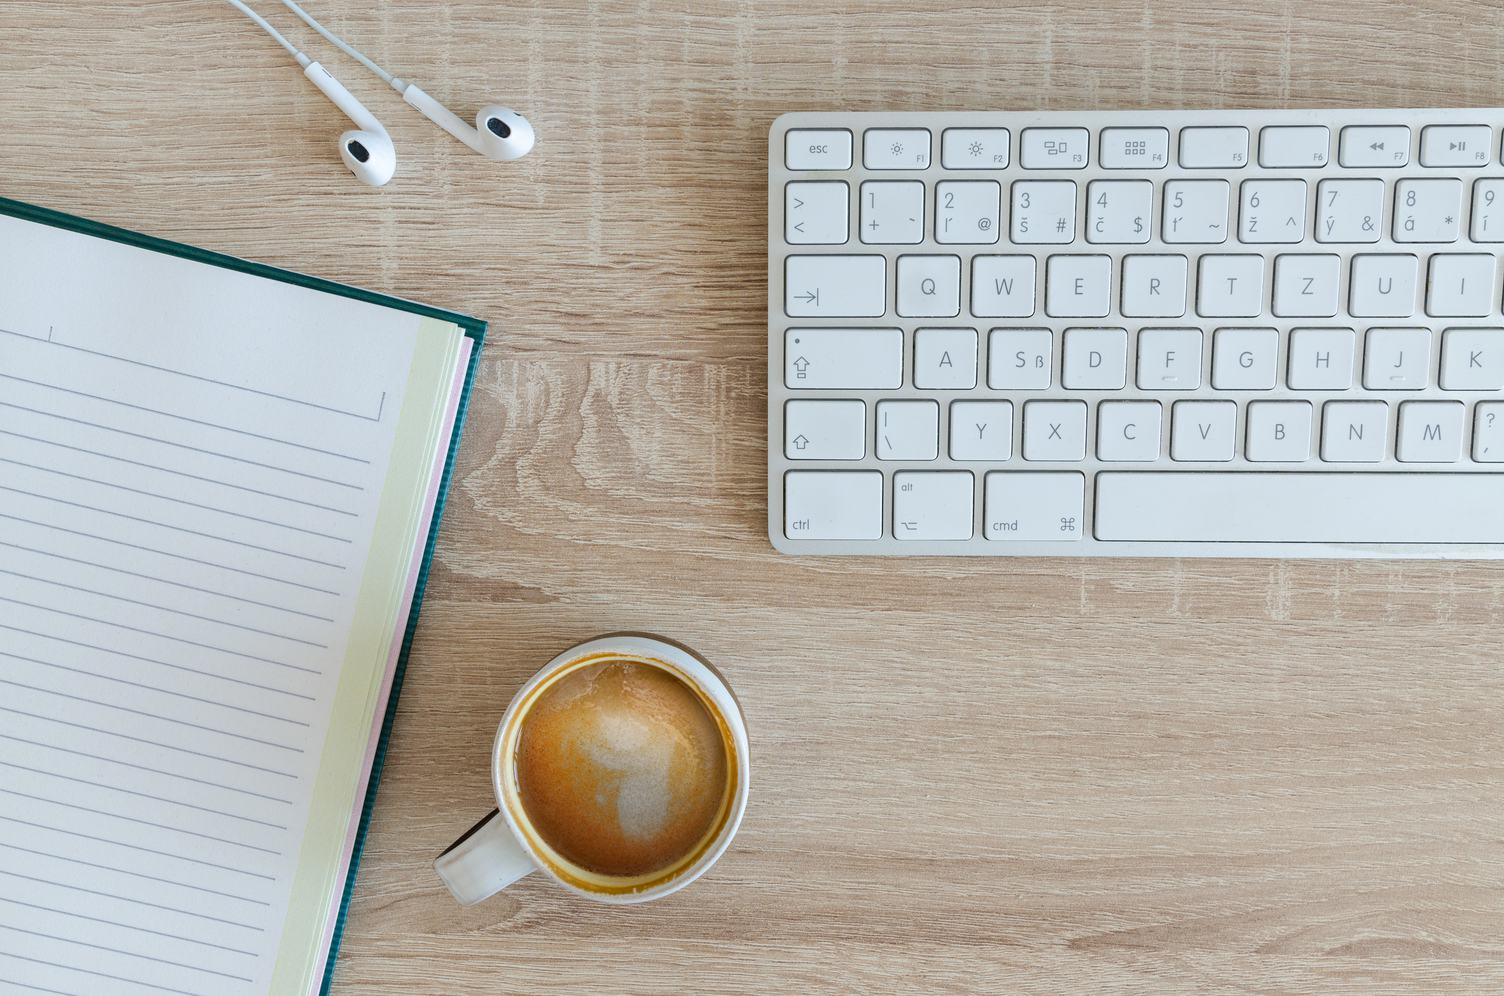 Flat Lay Photo of Wooden Desk with Keyboard, Notebook, Earphones and Coffee